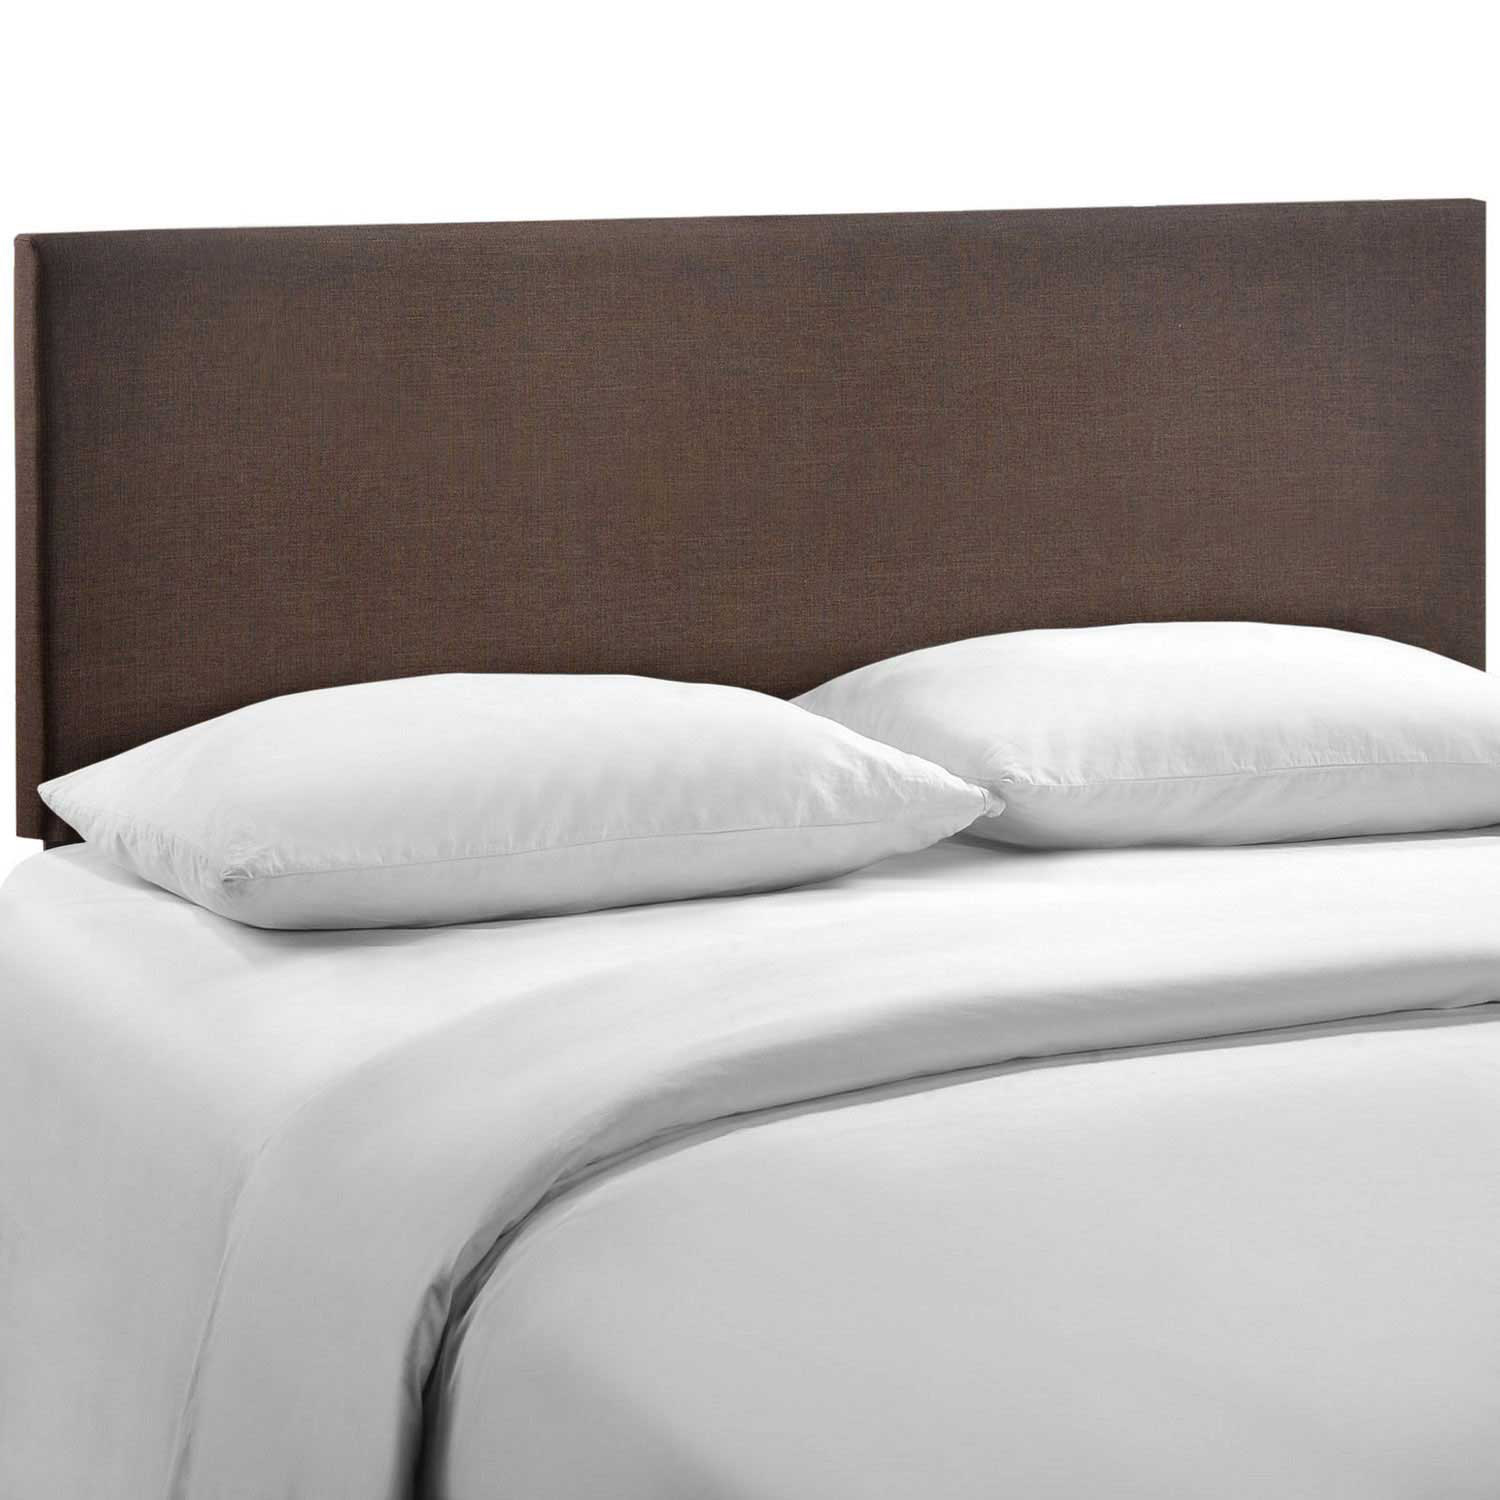 Modway Region Queen Upholstered Headboard - Dark Brown